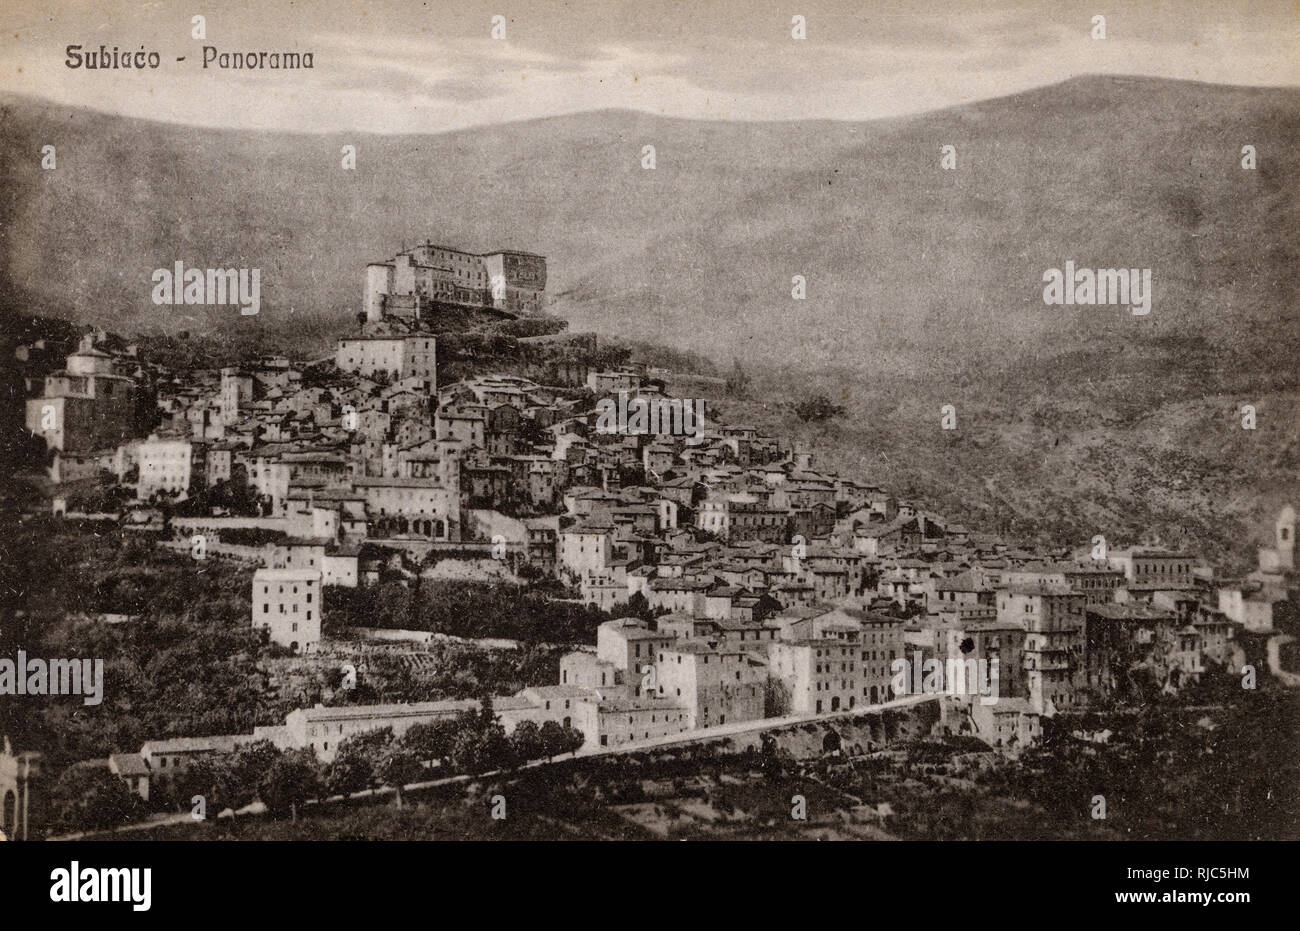 Subiaco - a town and comune in the Metropolitan City of Rome, in Lazio, central Italy. The Rocca Abbaziale ('Abbots castle'), a massive medieval edifice largely rebuilt in the 16th and 17th centuries. - Stock Image